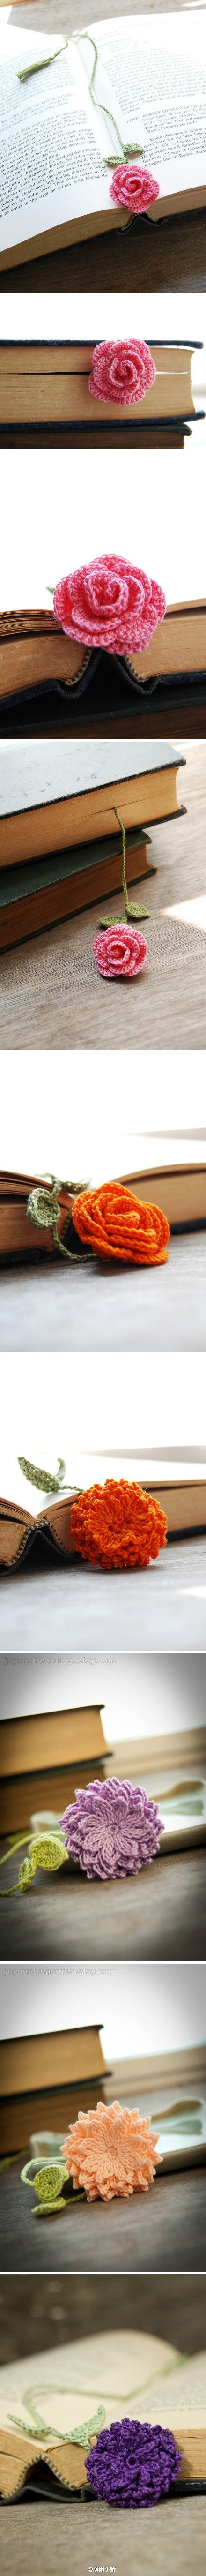 Pretty bookmarks - crochet flowers..